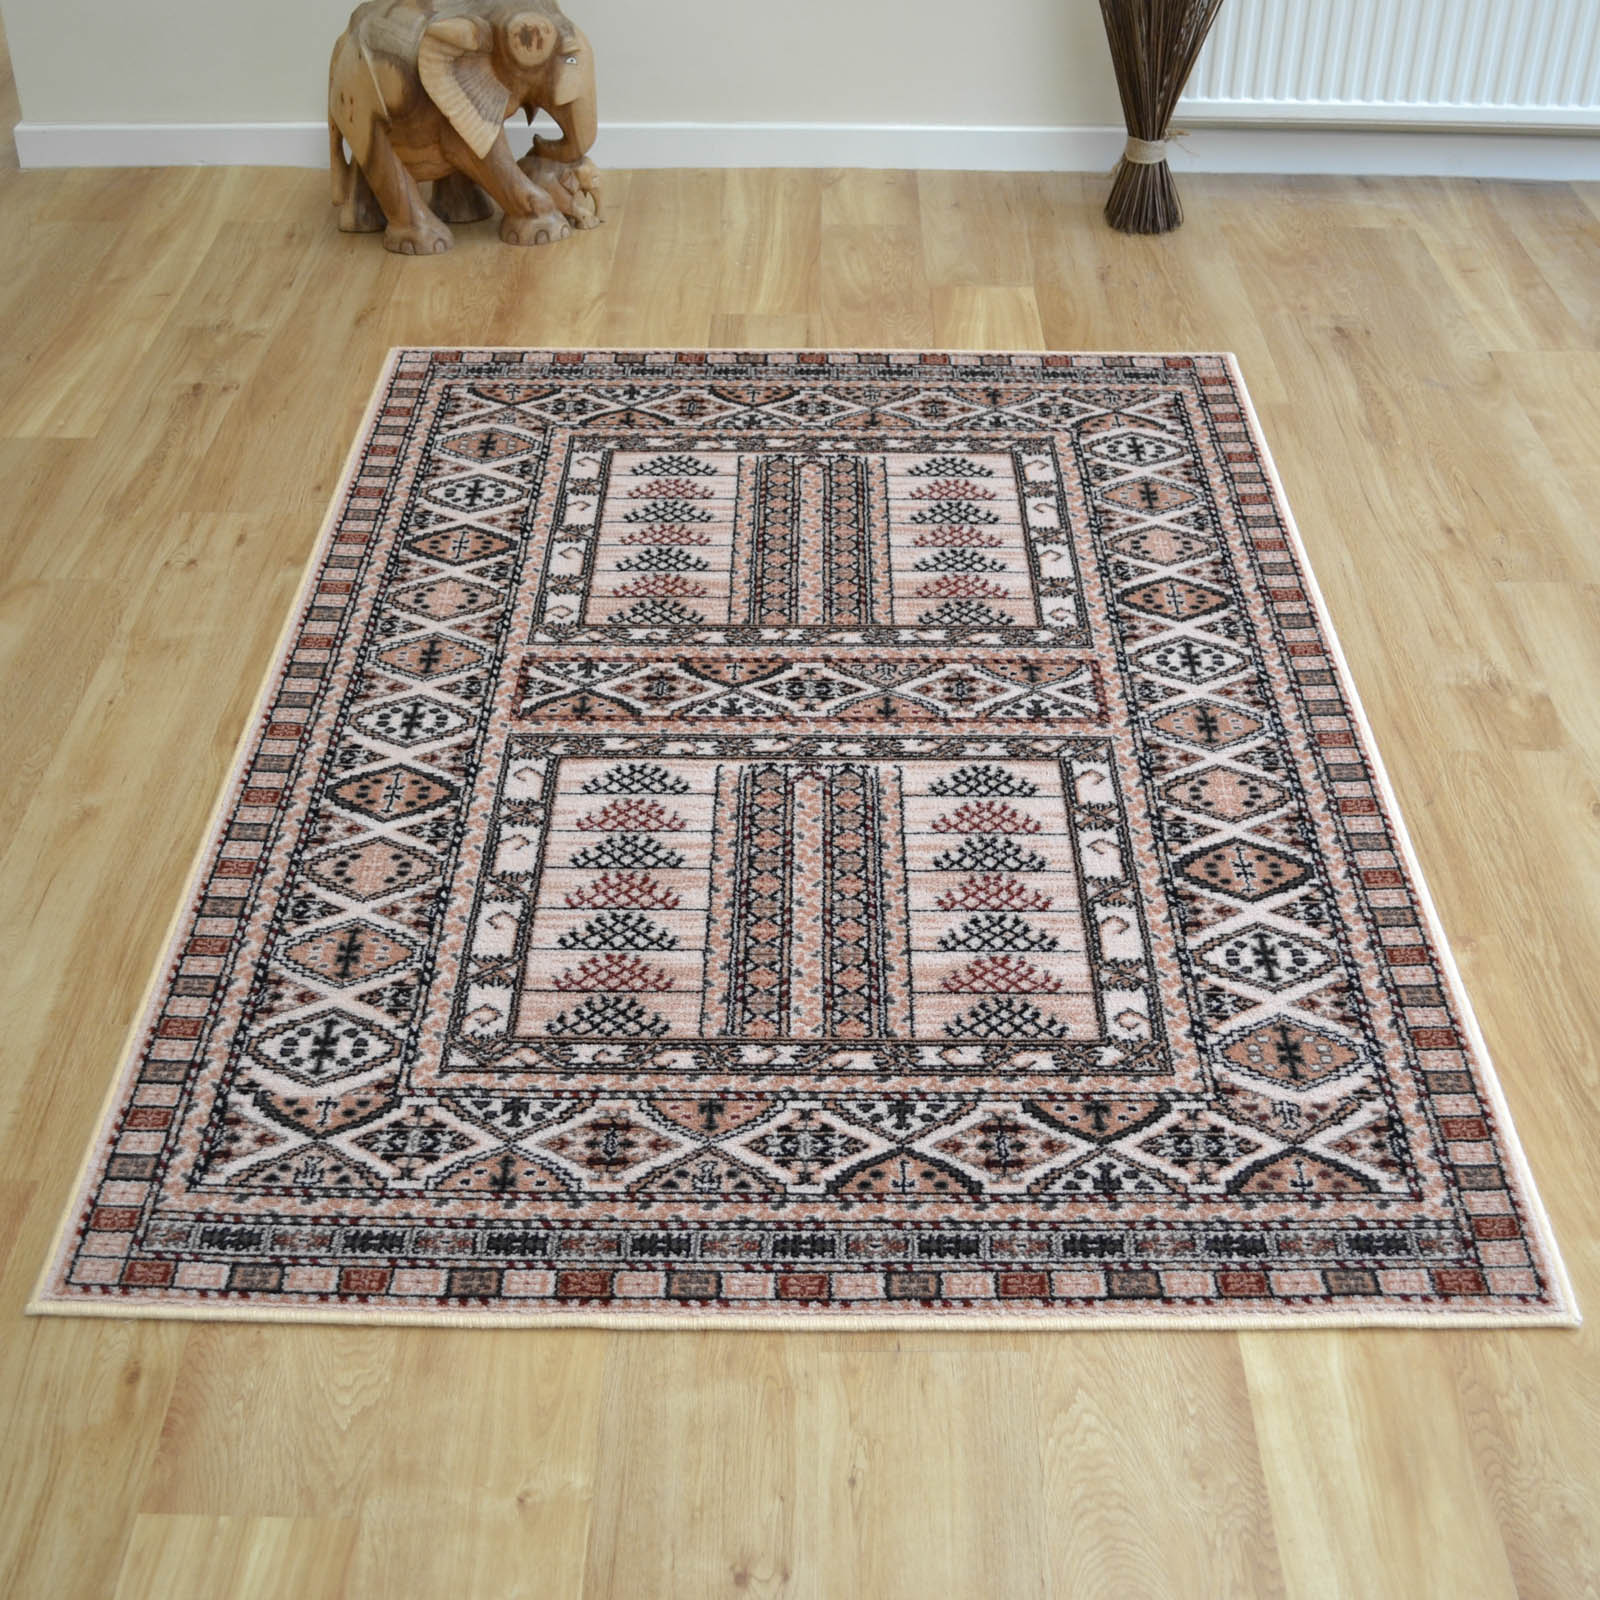 Afghan Rugs And Hallway Runners 100 Wool Buy Online